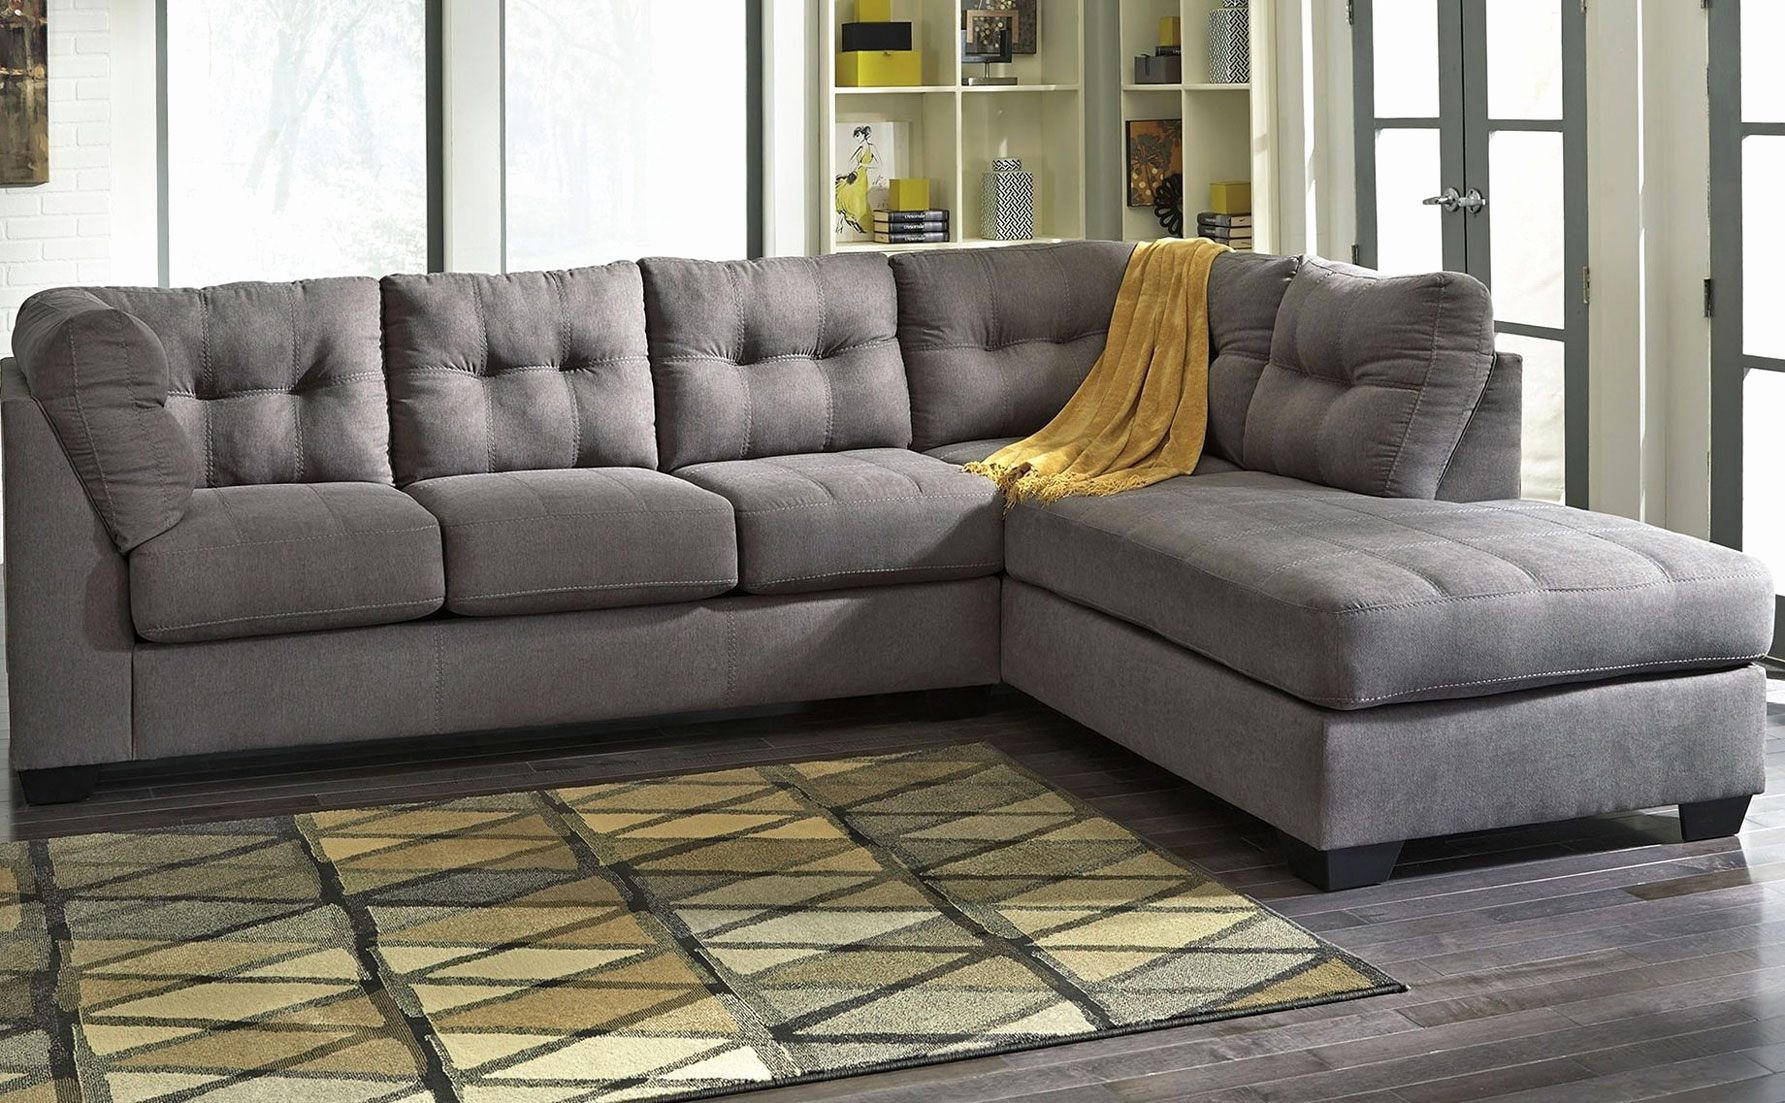 comfortabl comfortable sofa also a sleeper most sectional couches for the ever minimalist comforter